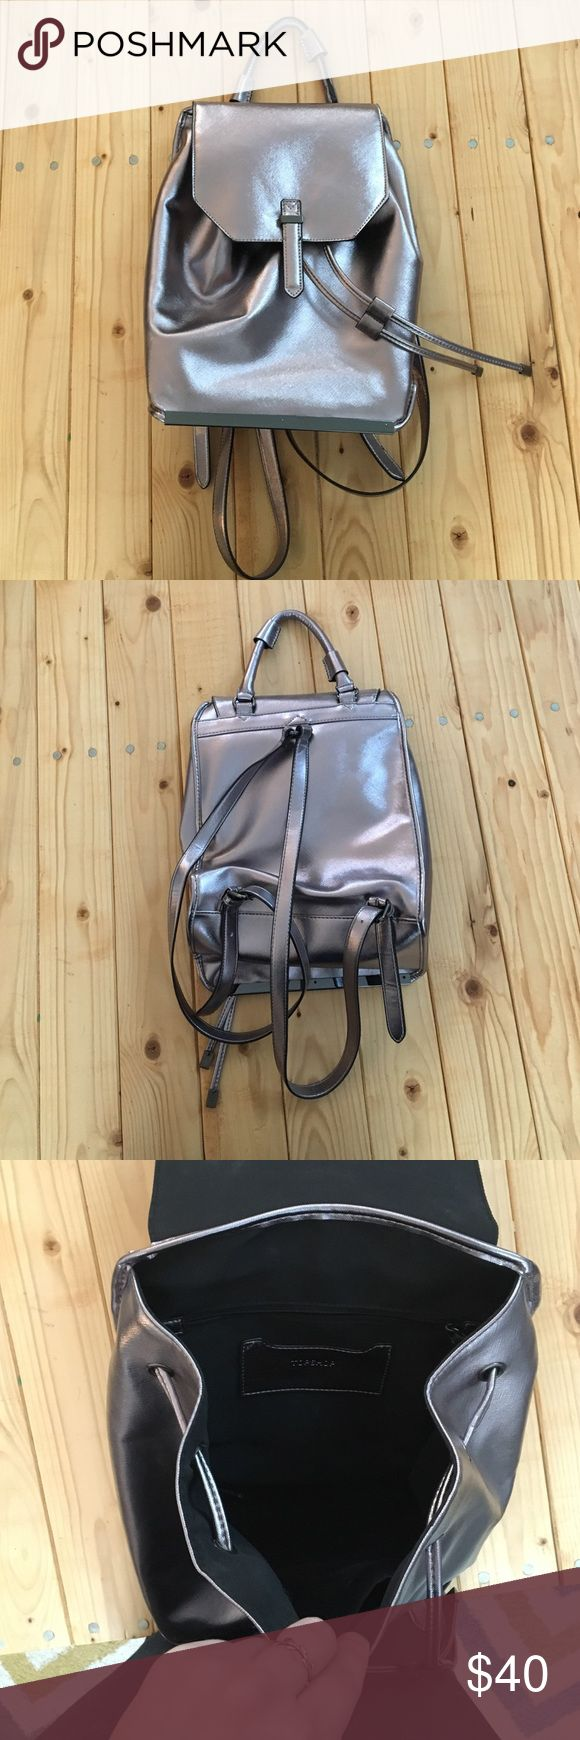 TopShop Metallic Backpack In like new condition. It is a purple tinged silver color. Topshop Bags Backpacks